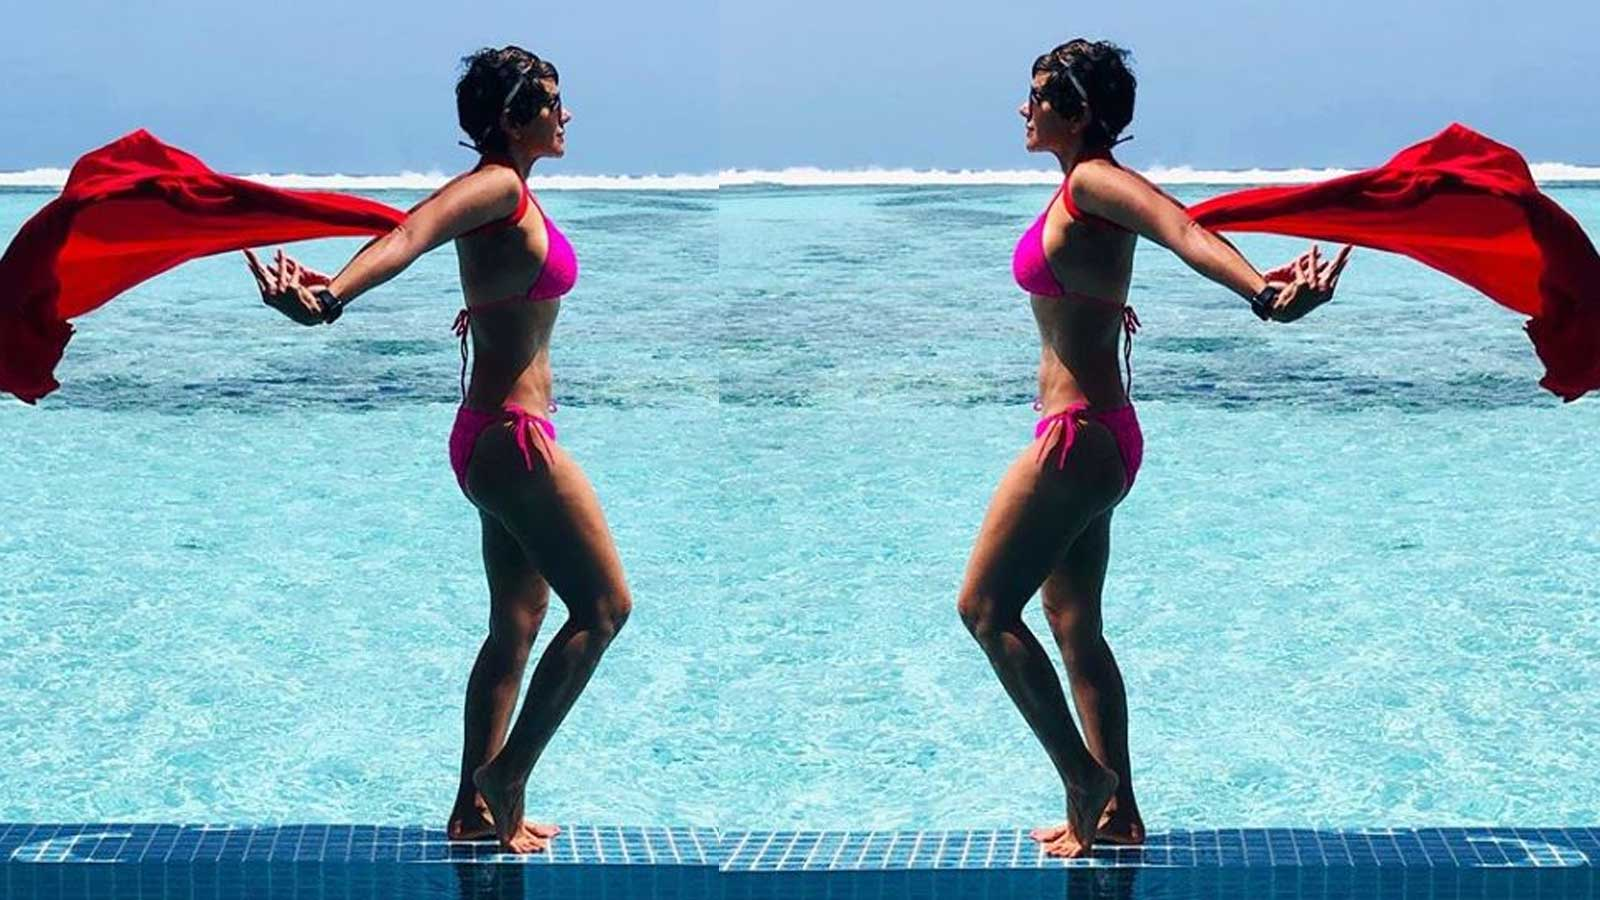 mandira-bedi-turns-superhero-in-a-pink-bikini-flaunts-her-washboard-abs